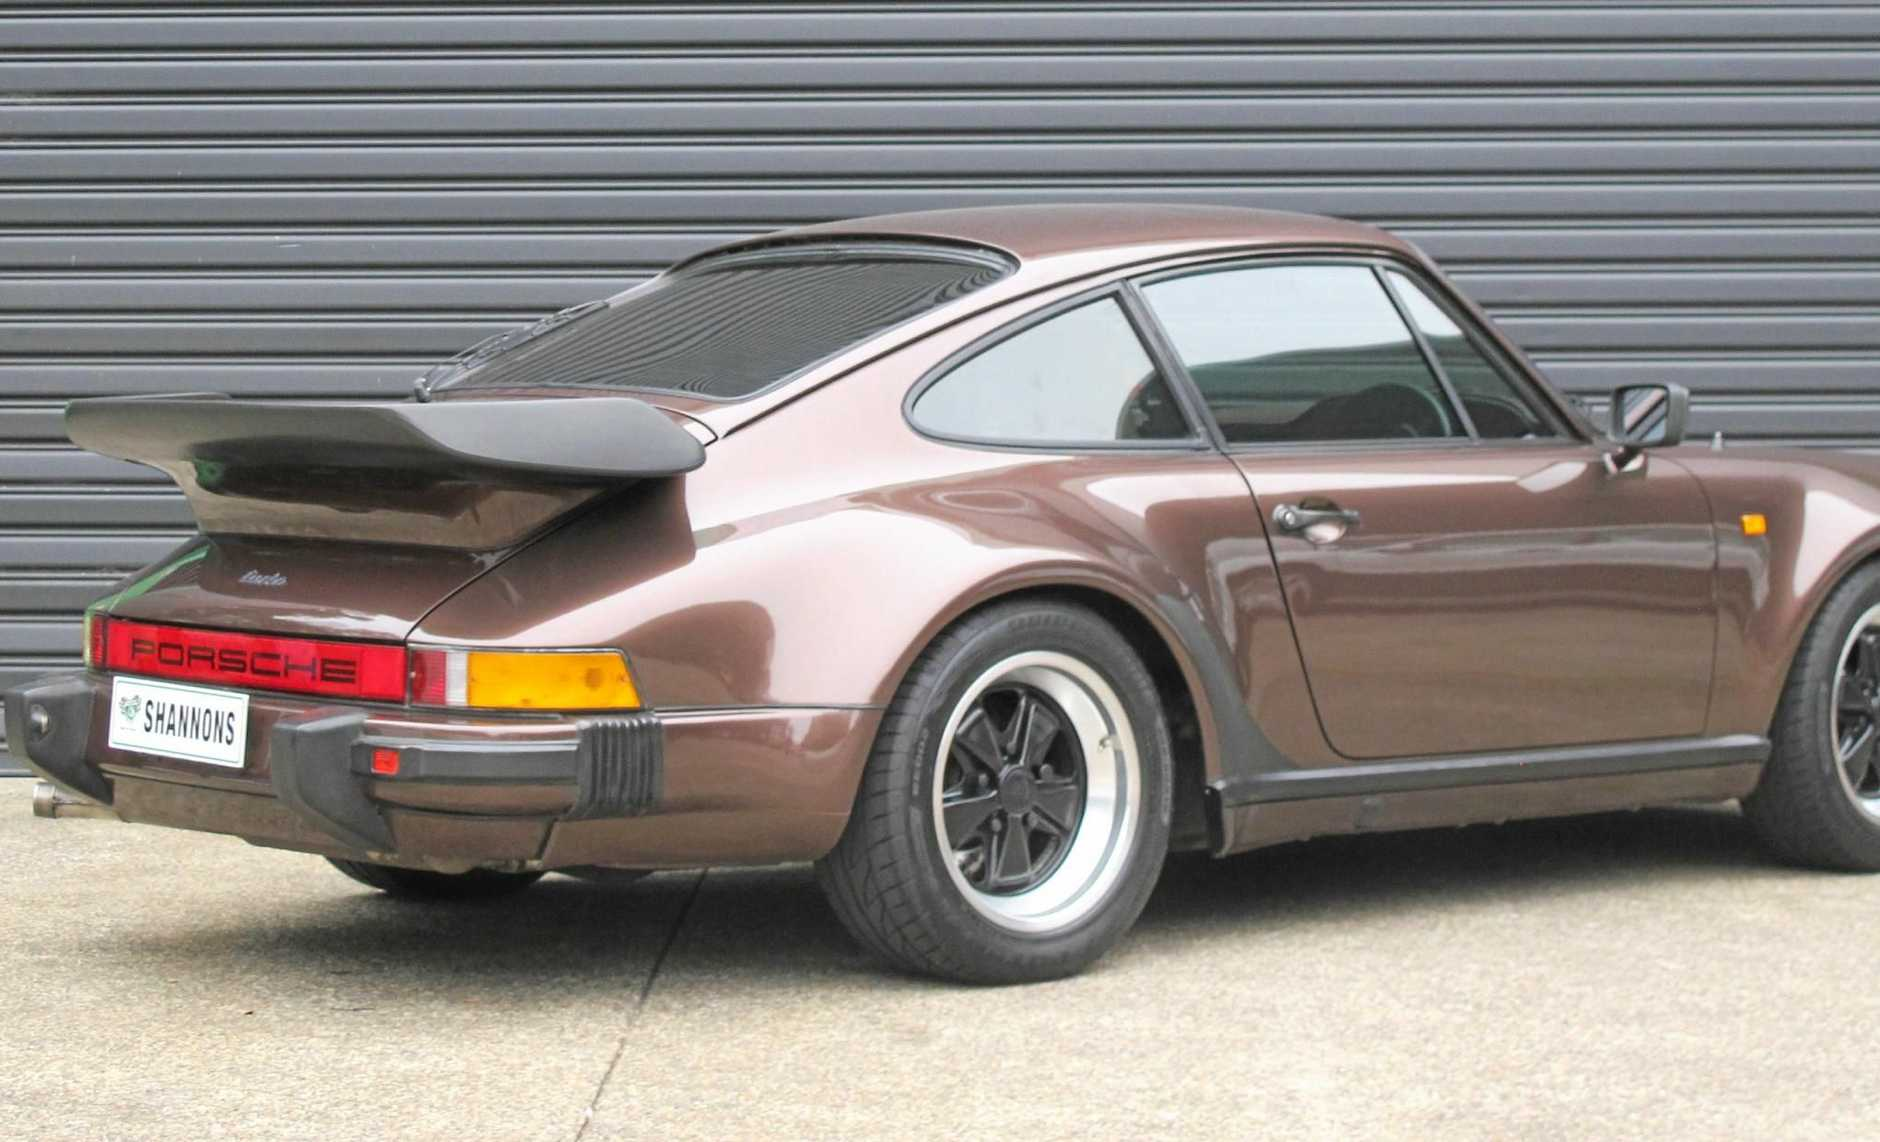 This Australian-delivered, low kilometre 1982 Porsche 930 Turbo Coupe sold for a 'world-market' $181,000